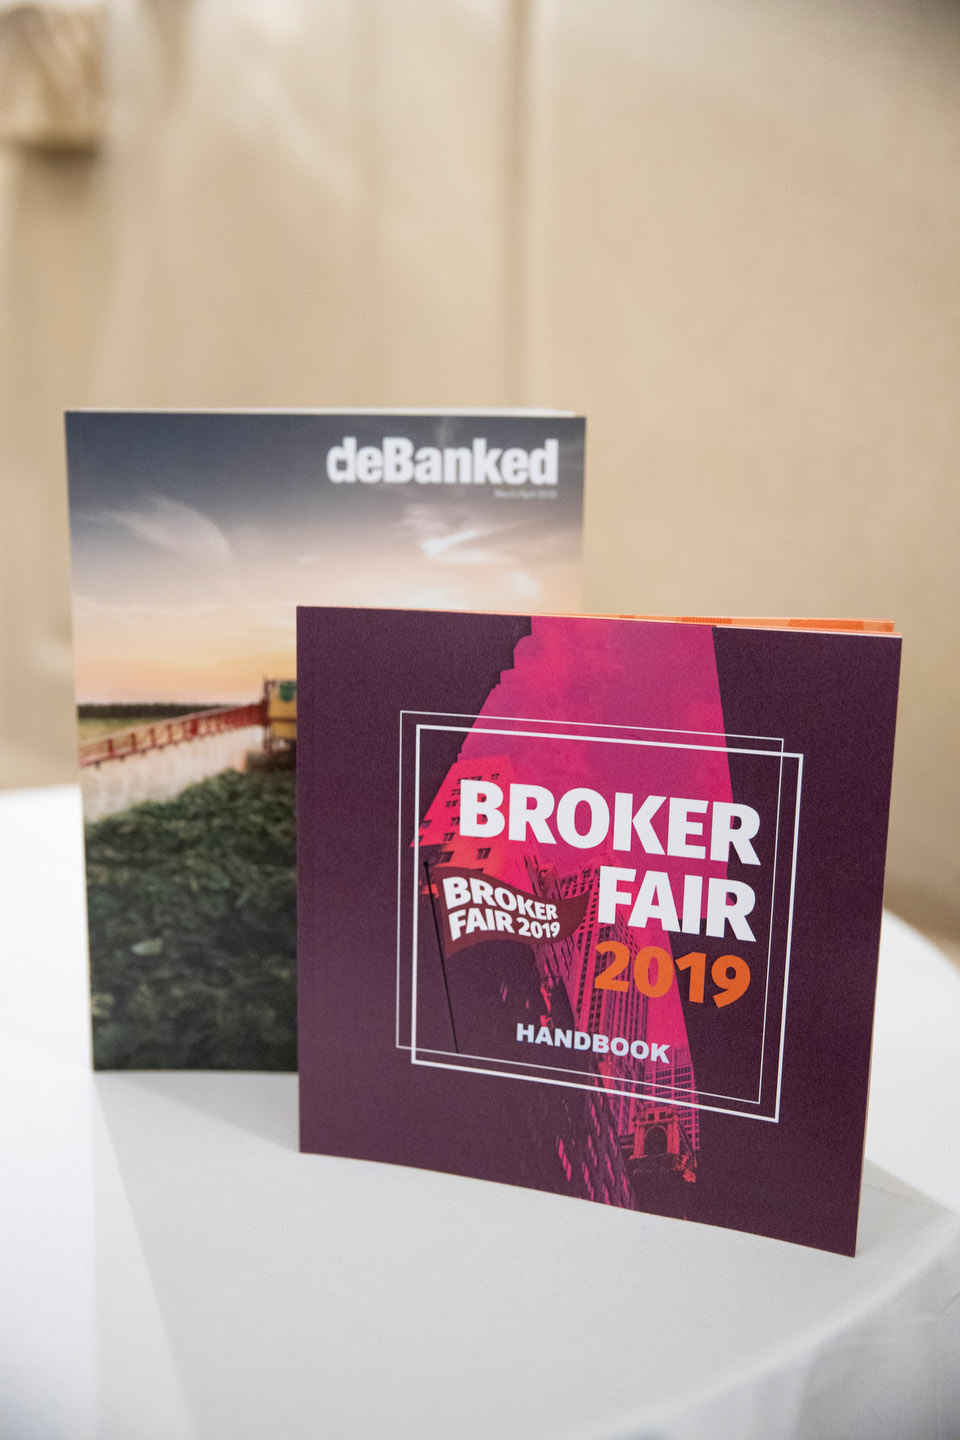 Broker Fair 2019 - Presented by deBanked - 273